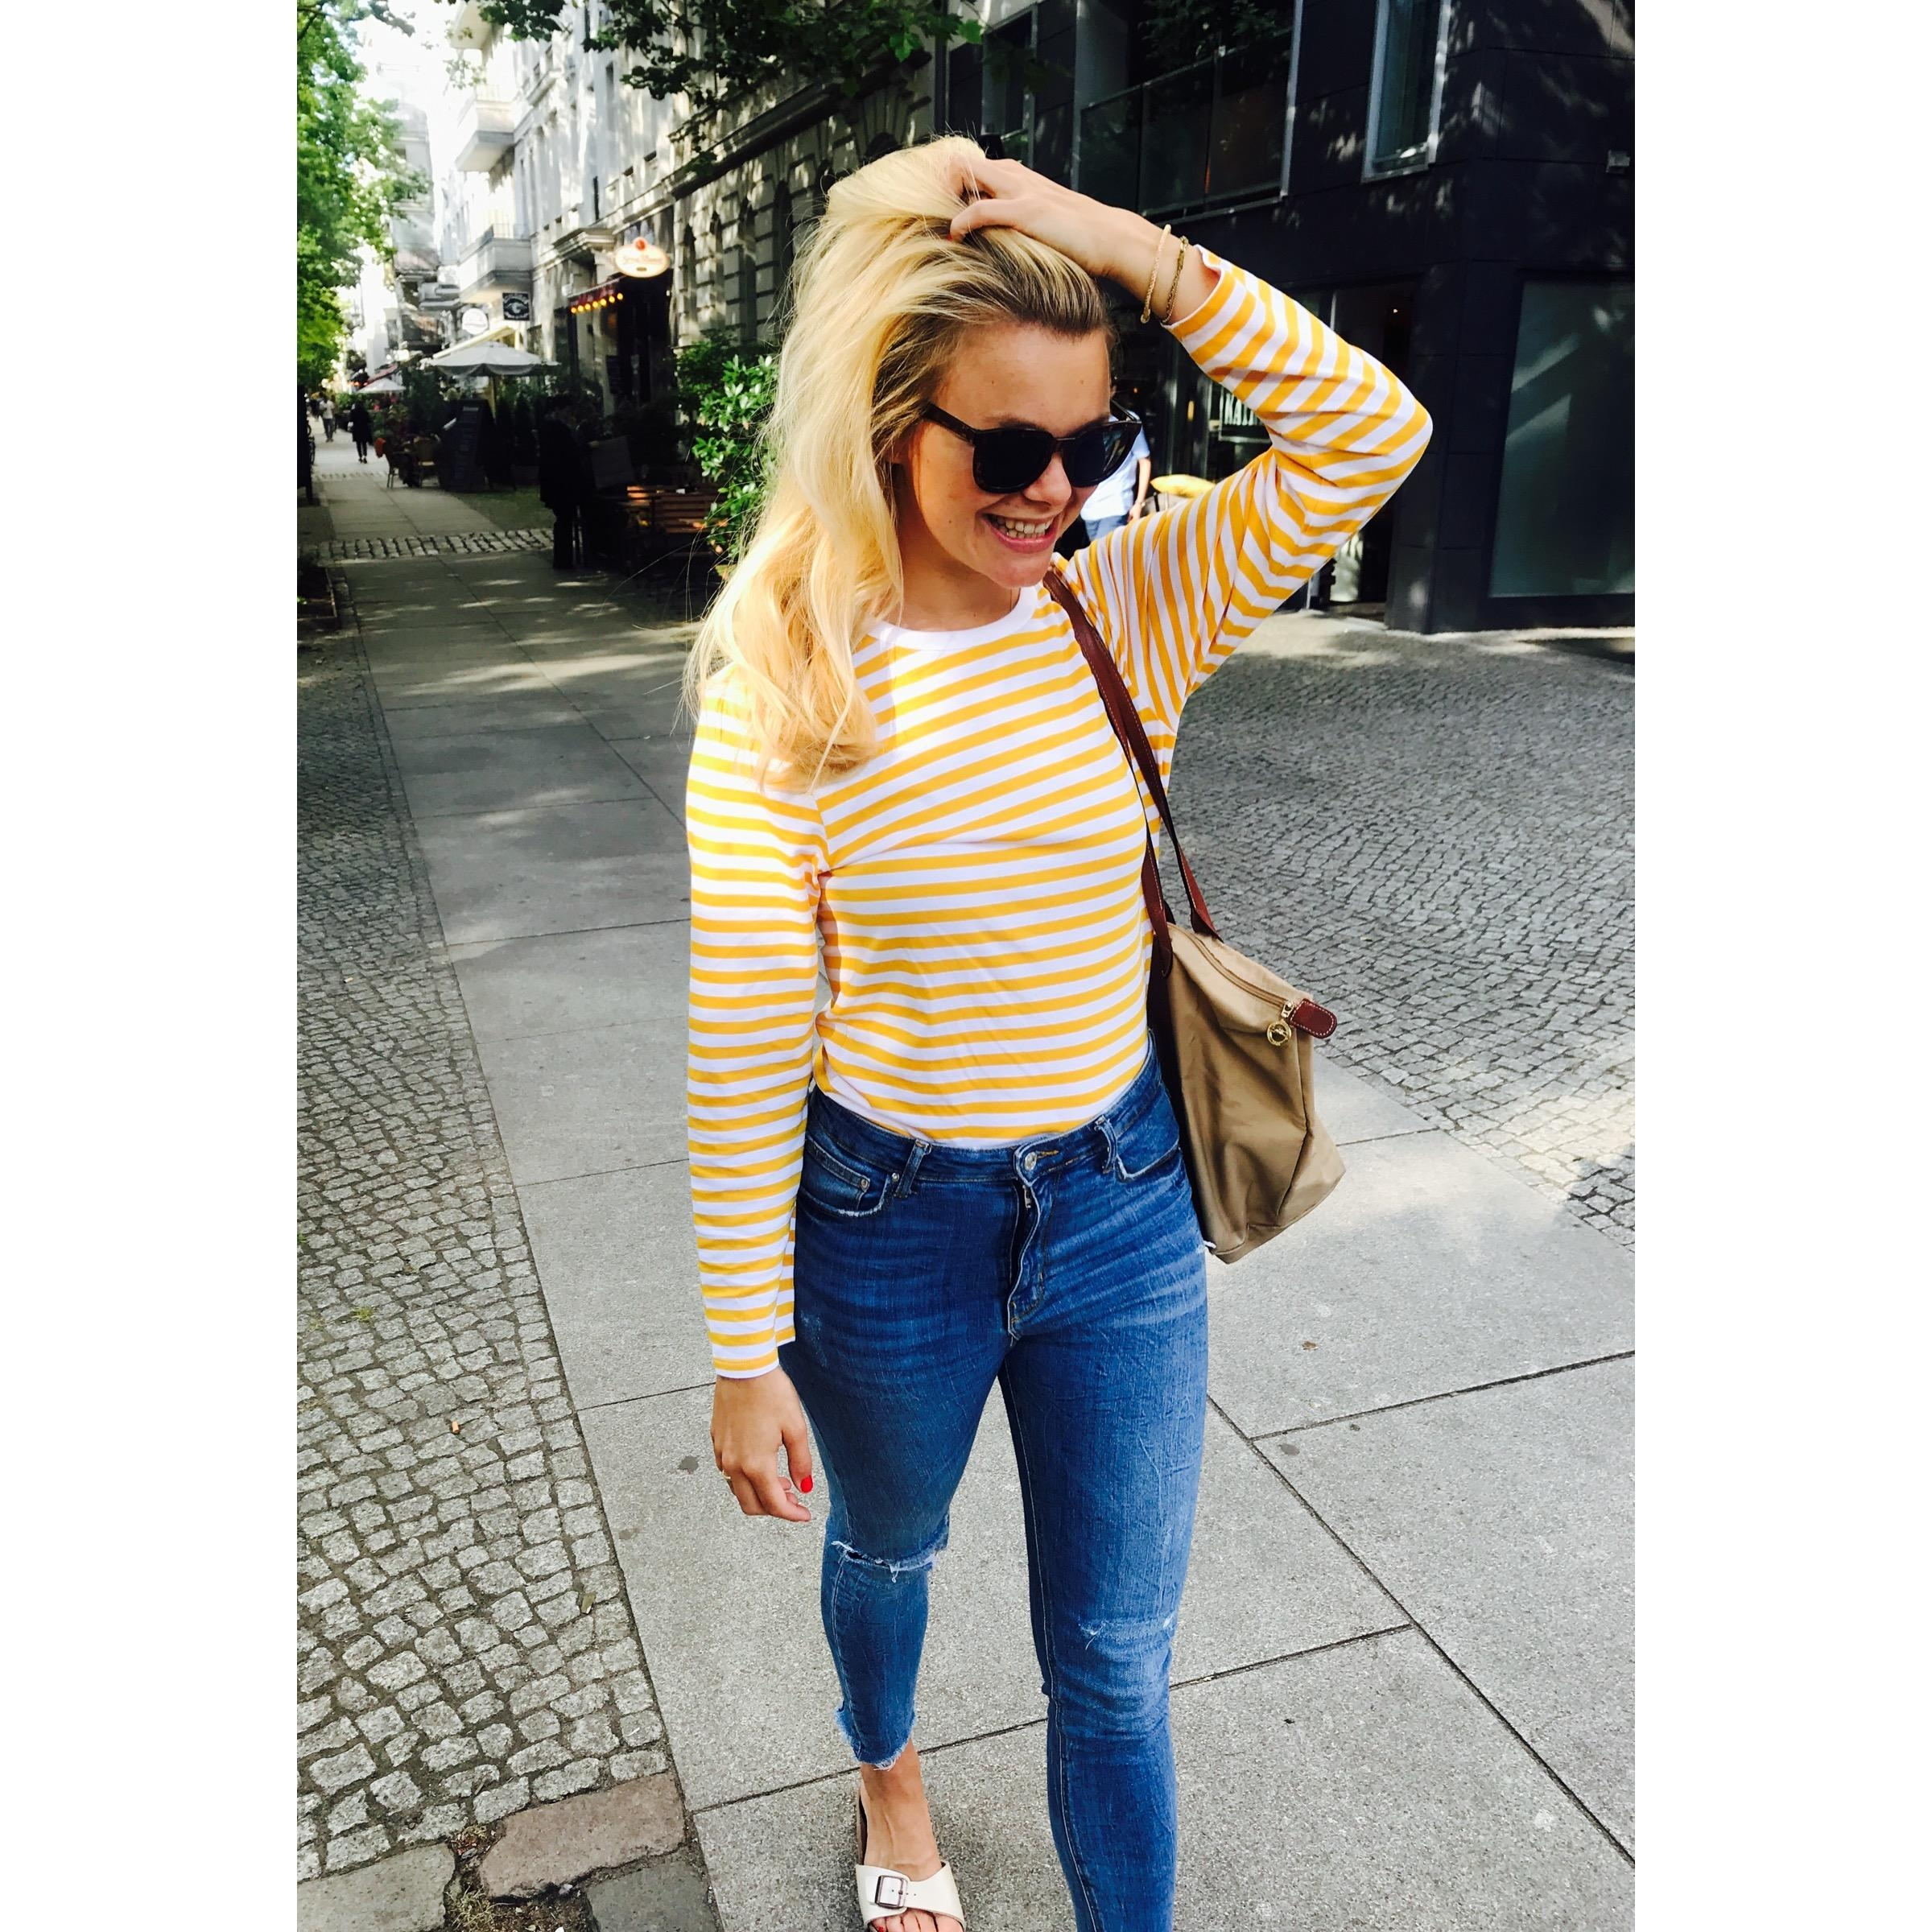 Einfach mal #Pause machen. #weekendvibes #summerlove #yellowstripes #birkenstocks #denimlove #empowerment